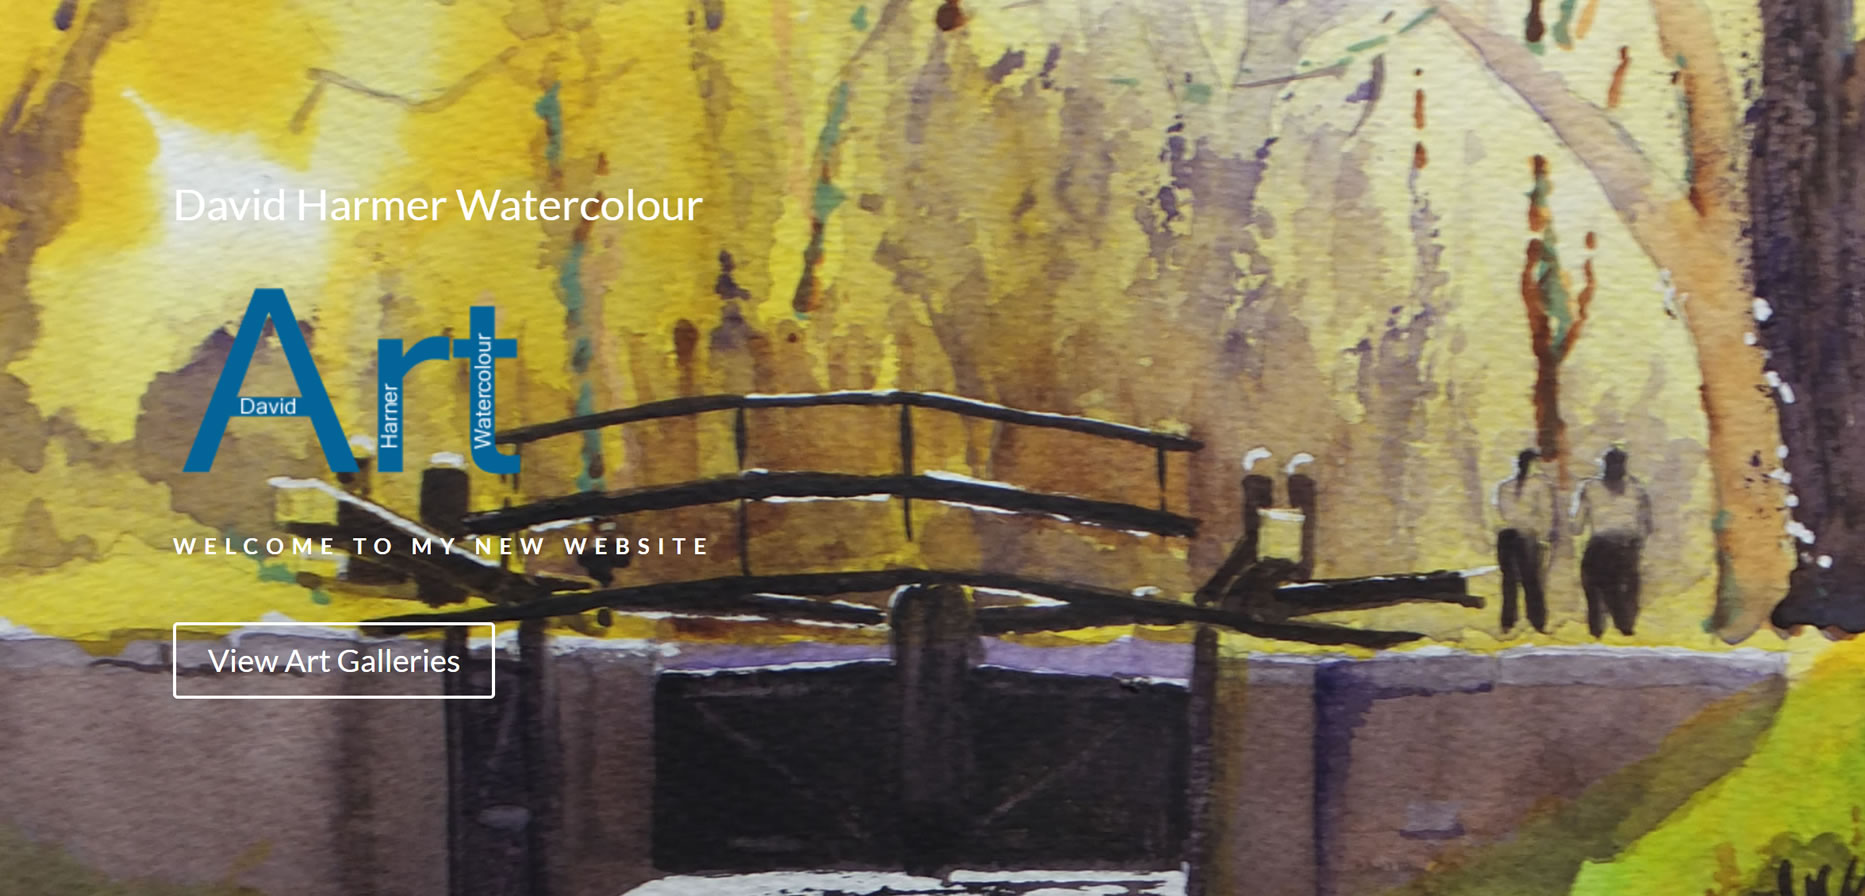 Art Website Builder - Surrey Artists site for David Harmer Watercolour